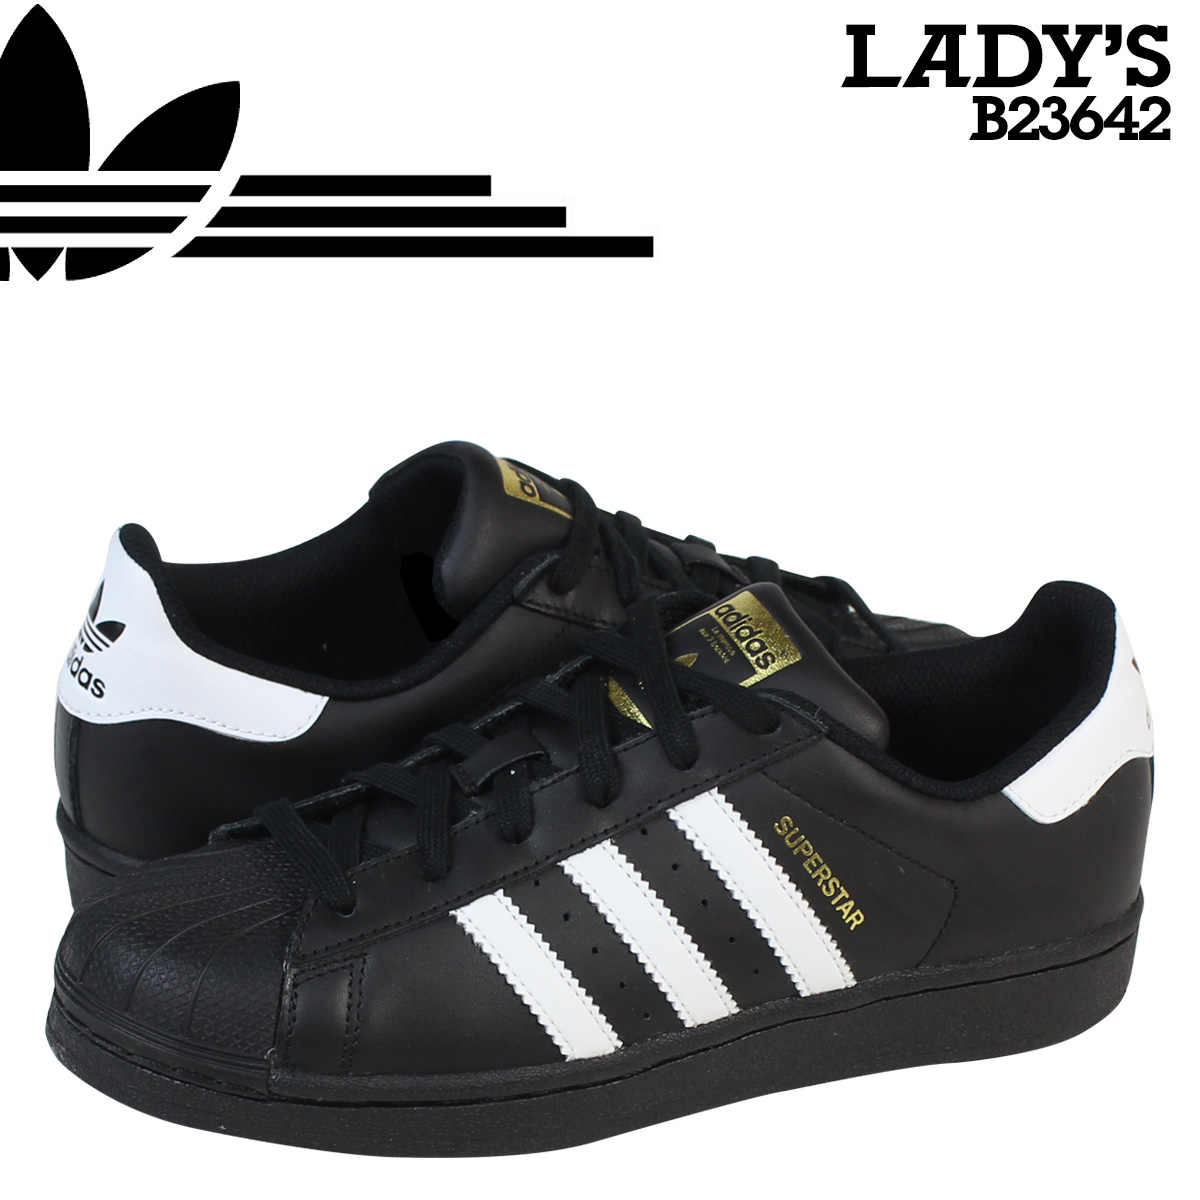 new arrival 32f58 6dd2c Sugar Online Shop Adidas originals adidas Originals Ladys SUPERSTAR  FOUNDATION J sneakers superstar foundation youth B23642 black  Rakuten  Global Market